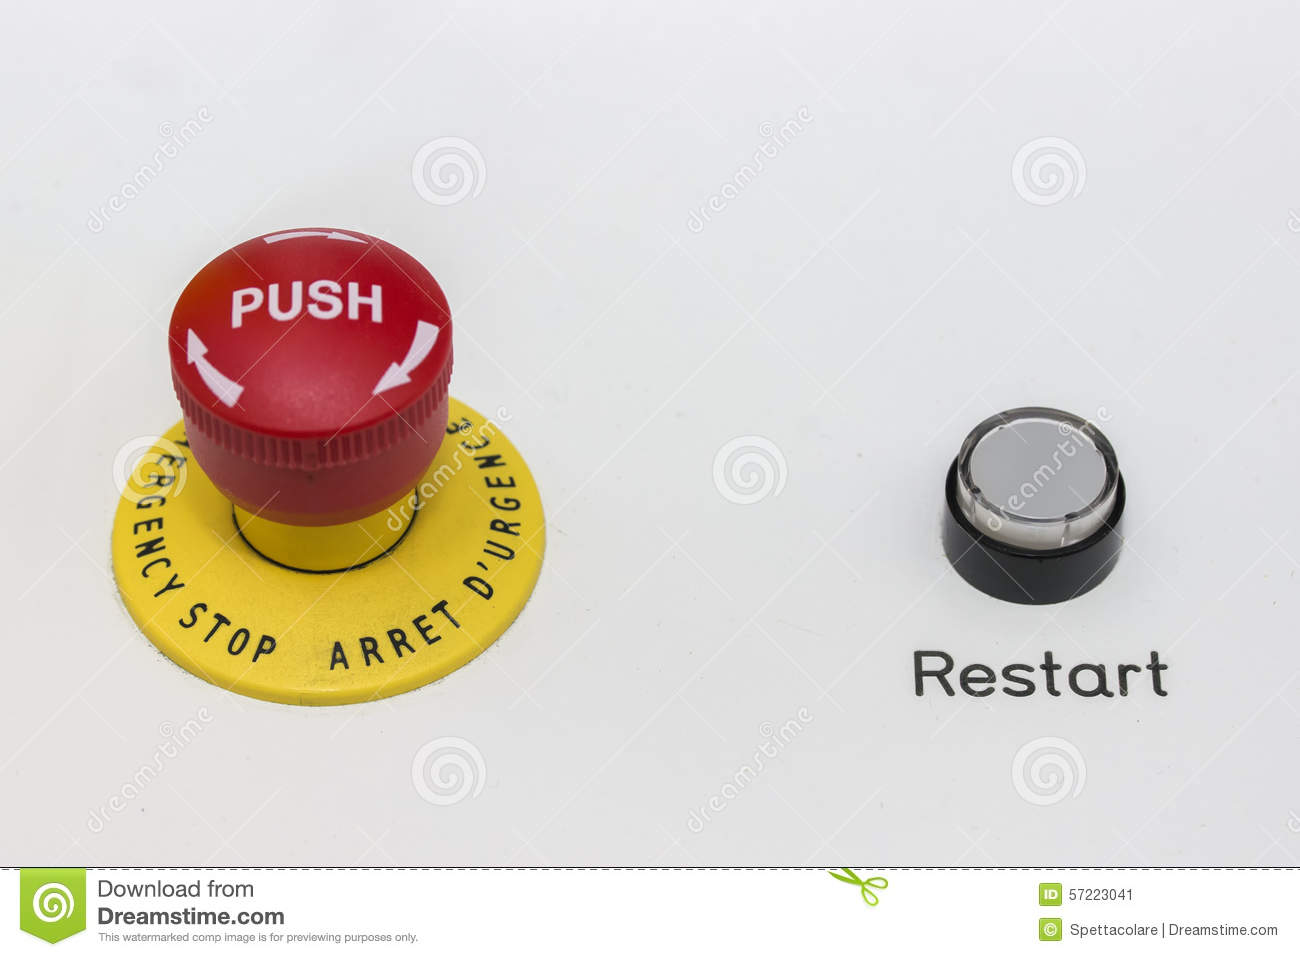 Emergency stop icon clipart emergency off - Black Button Emergency